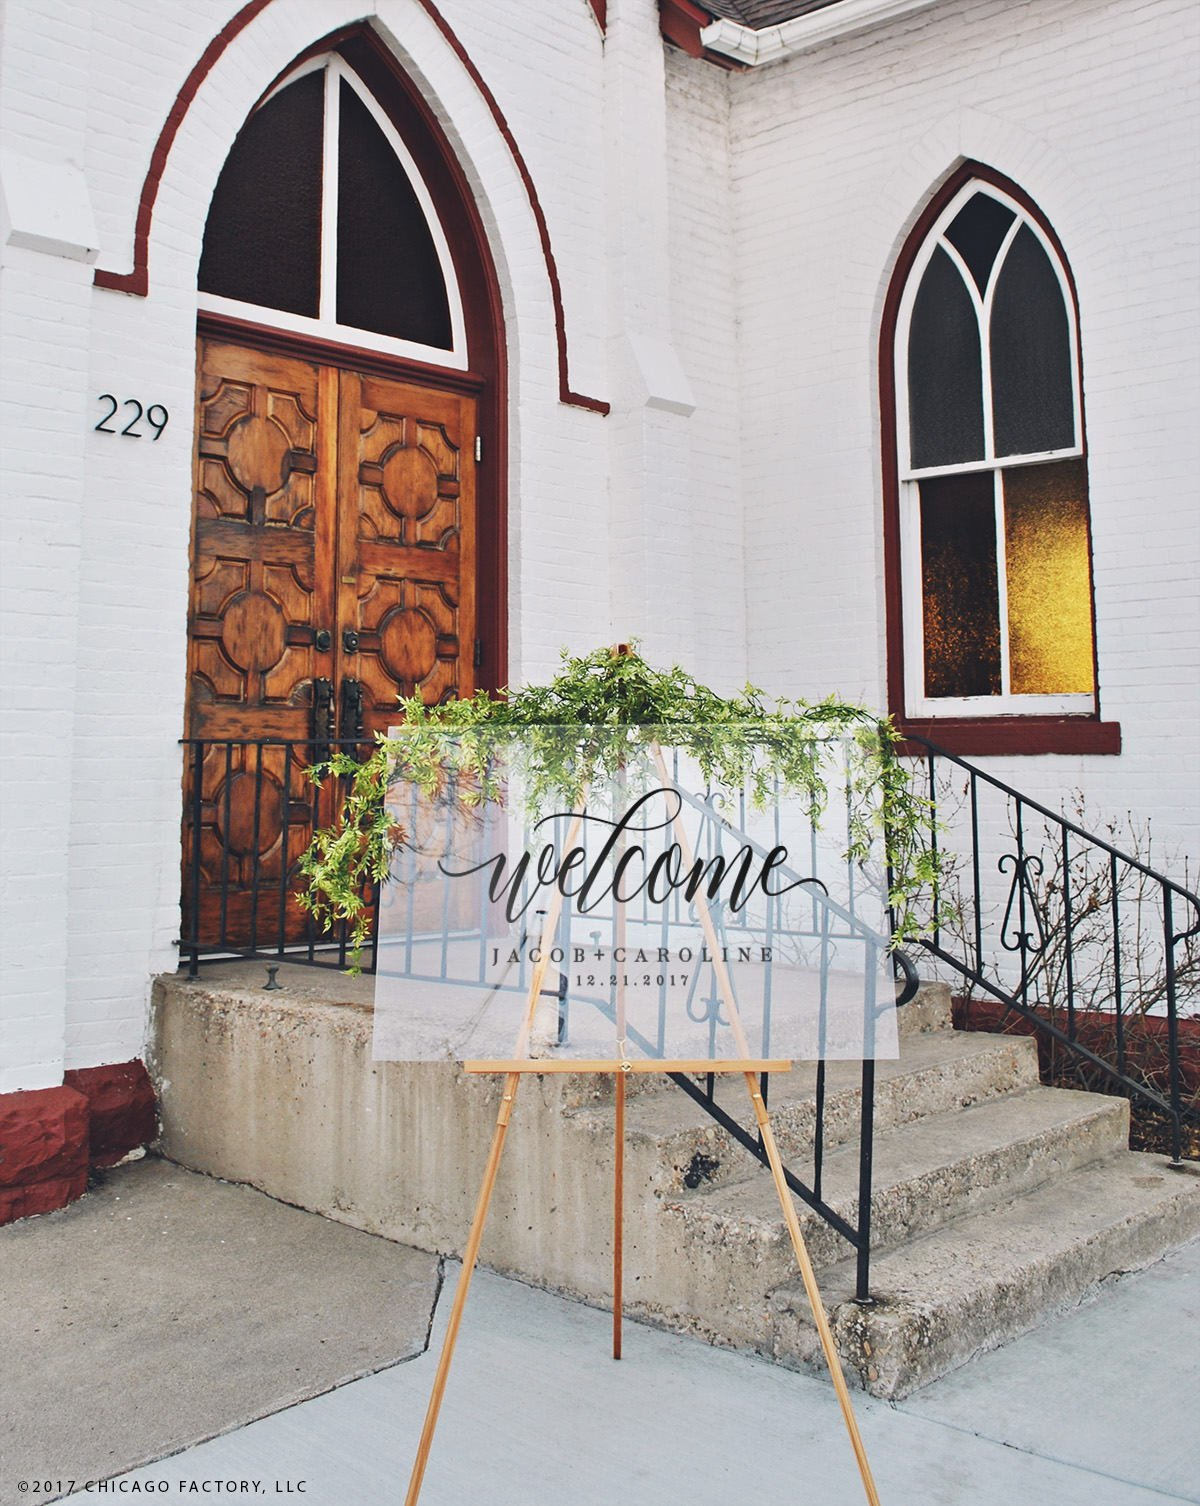 Acrylic Wedding Signs - Chicago Factory